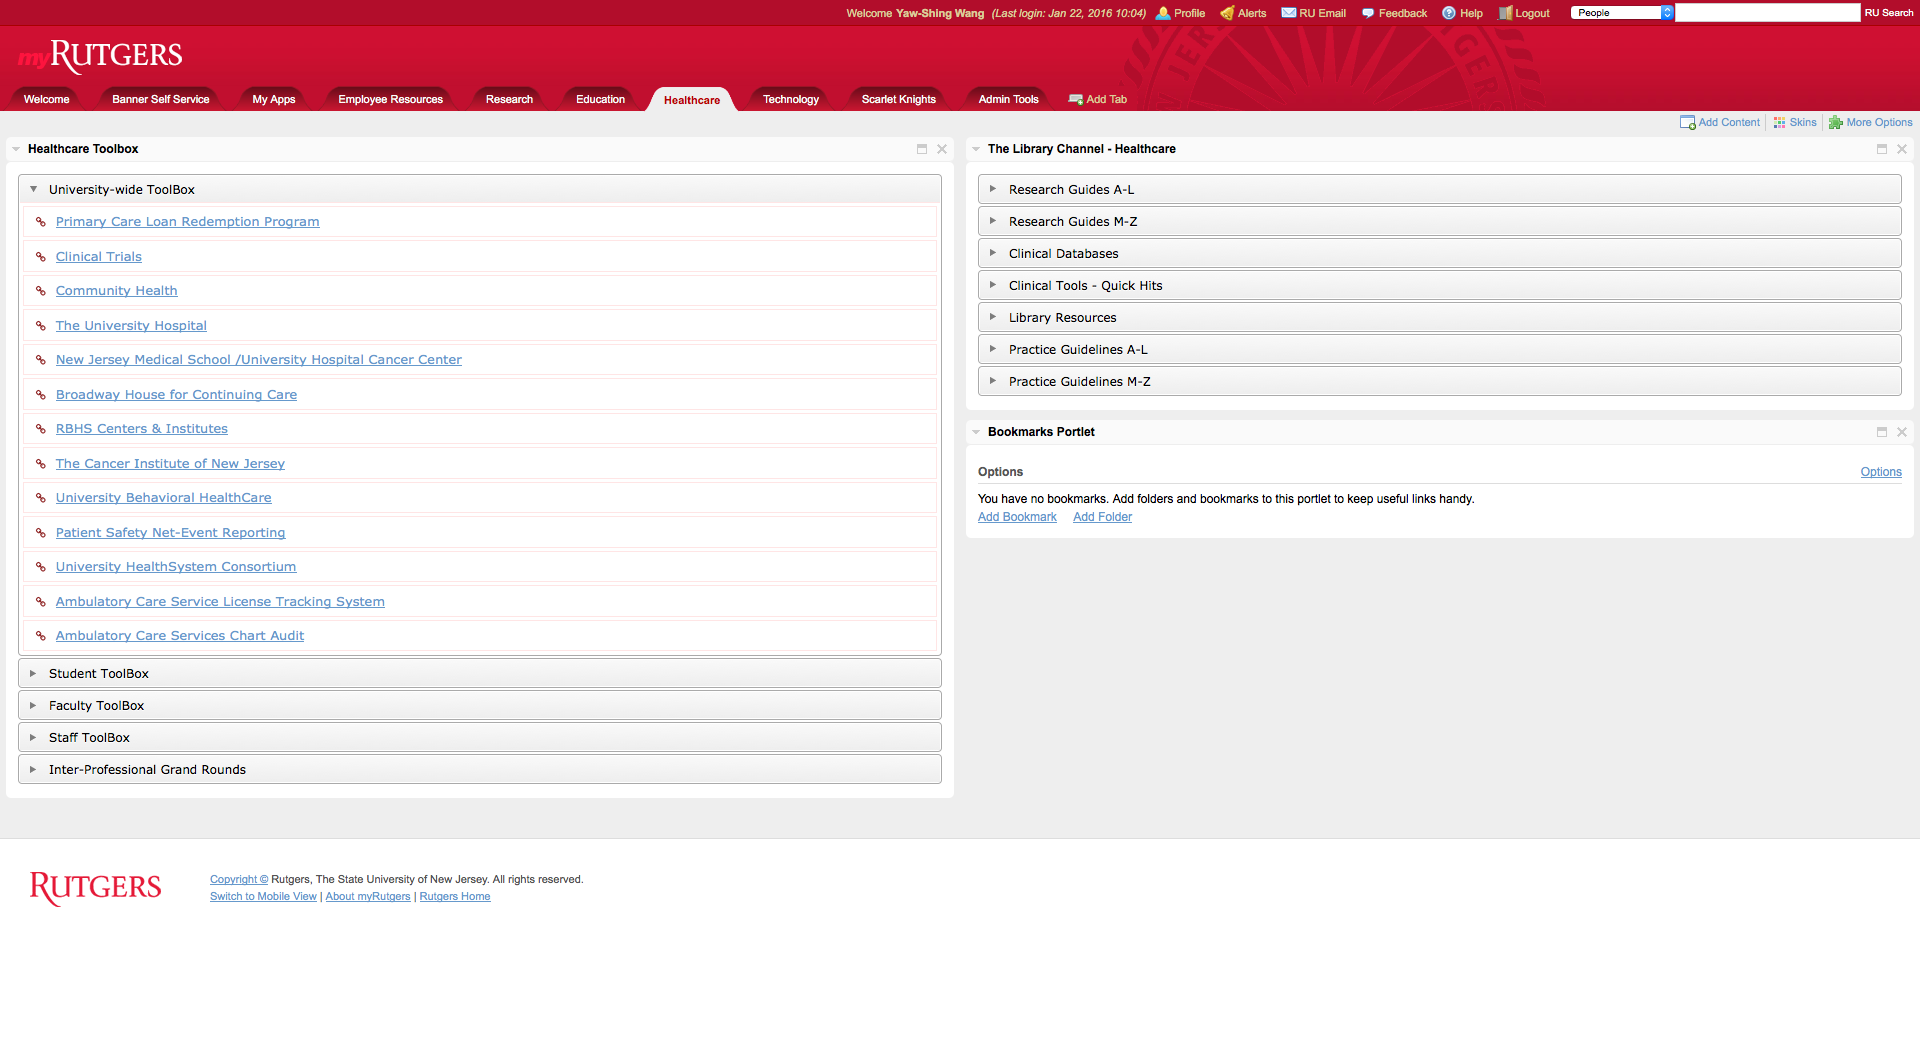 screenshot-myRutgers-healthcare